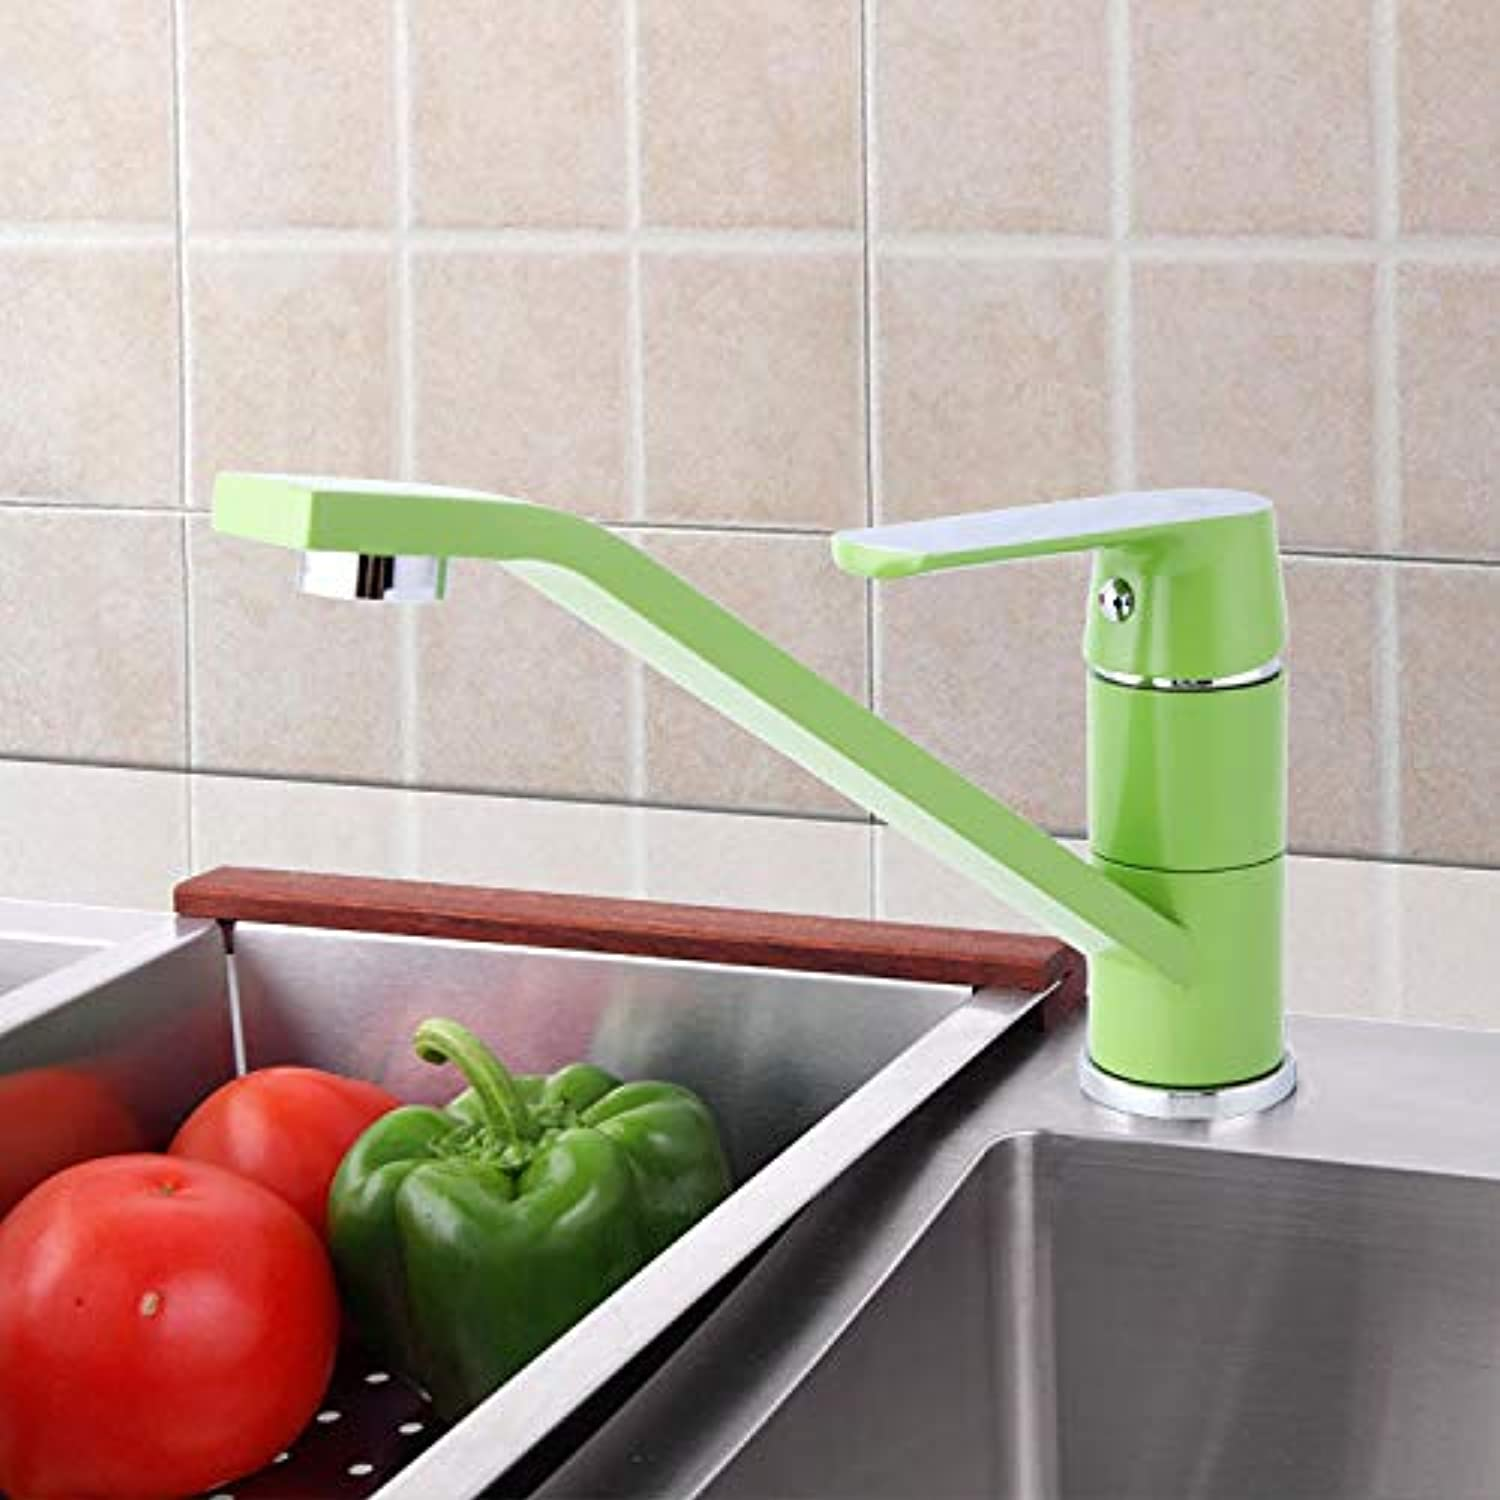 colorful Kitchen Sink Faucet, Hot And Cold Faucet, 360 Degree redation, Available In White orange And Green,Green